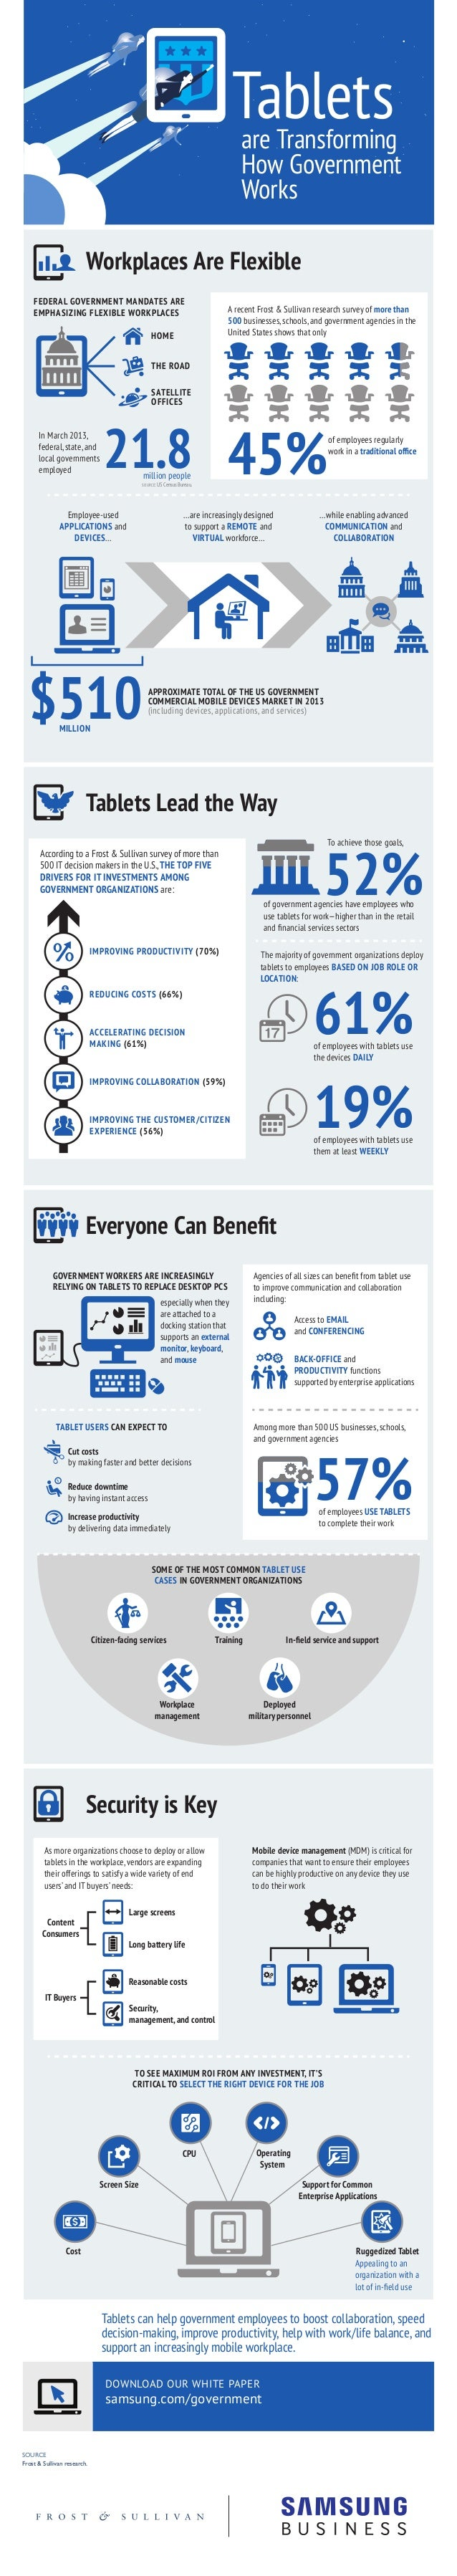 are Transforming How Government Works Tablets $510 SOURCE Frost & Sullivan research. Workplaces Are Flexible Tablets Lead ...